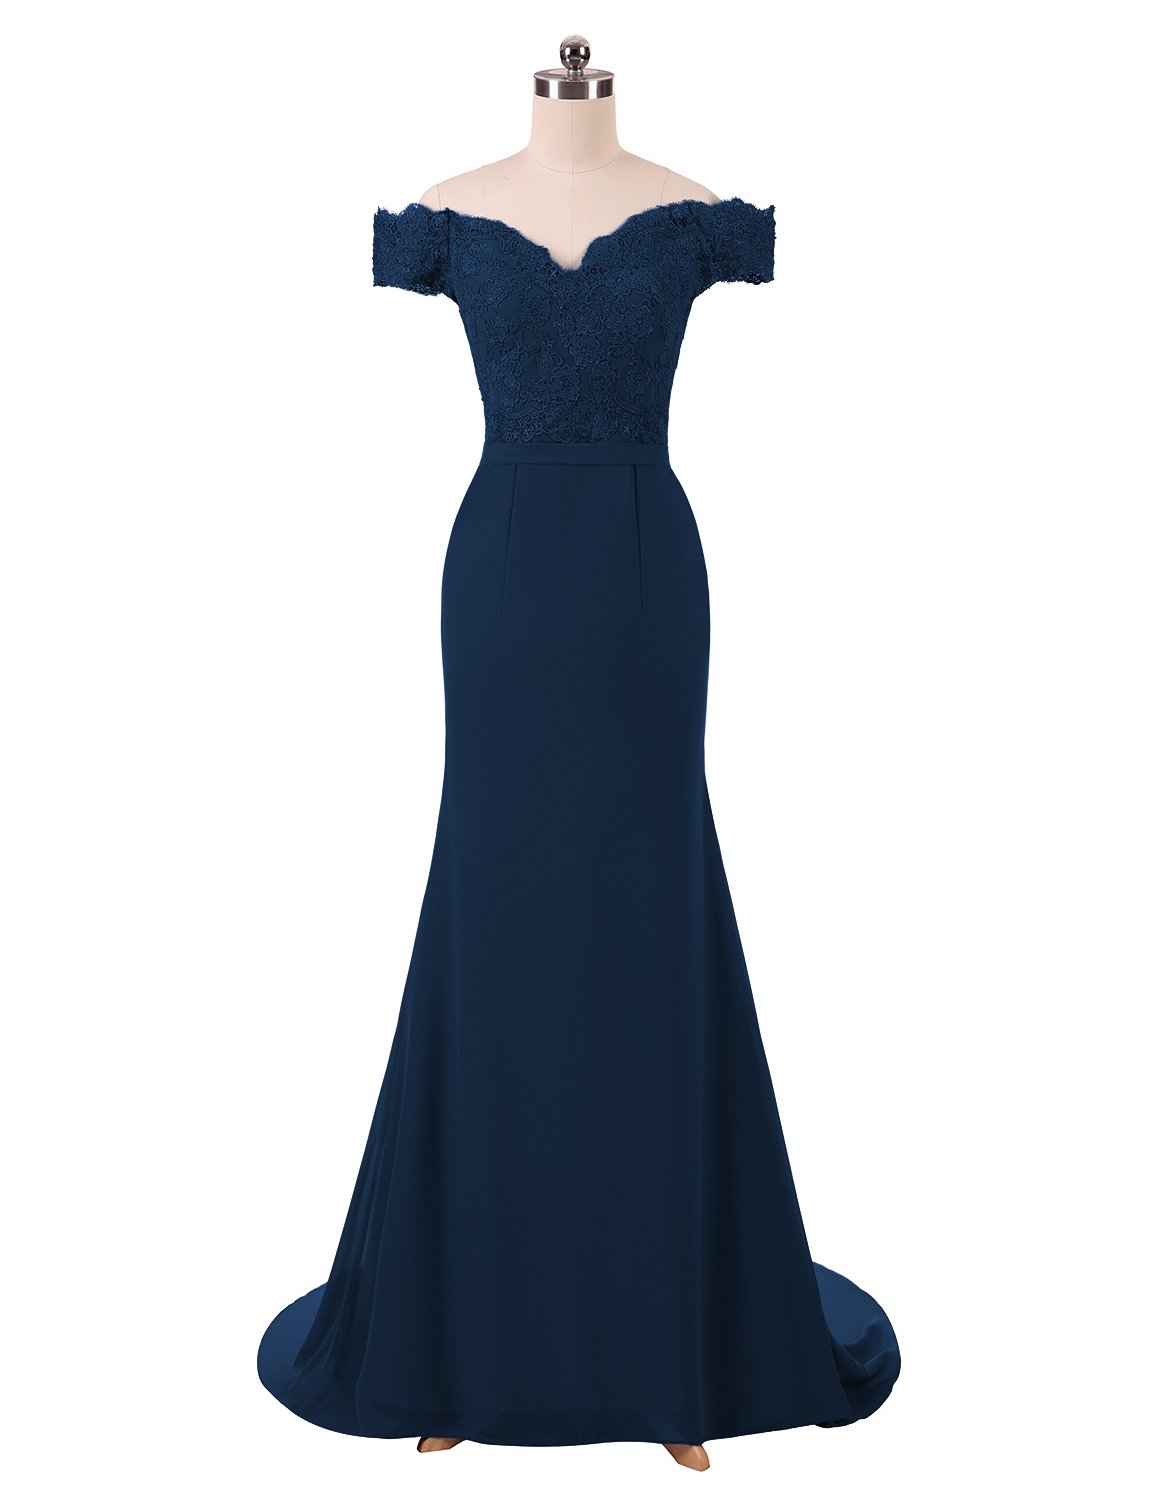 aa1558ecbbe BRLMALL Women s Long Mermaid Lace Evening Dress Party Gown Navy Blue 10